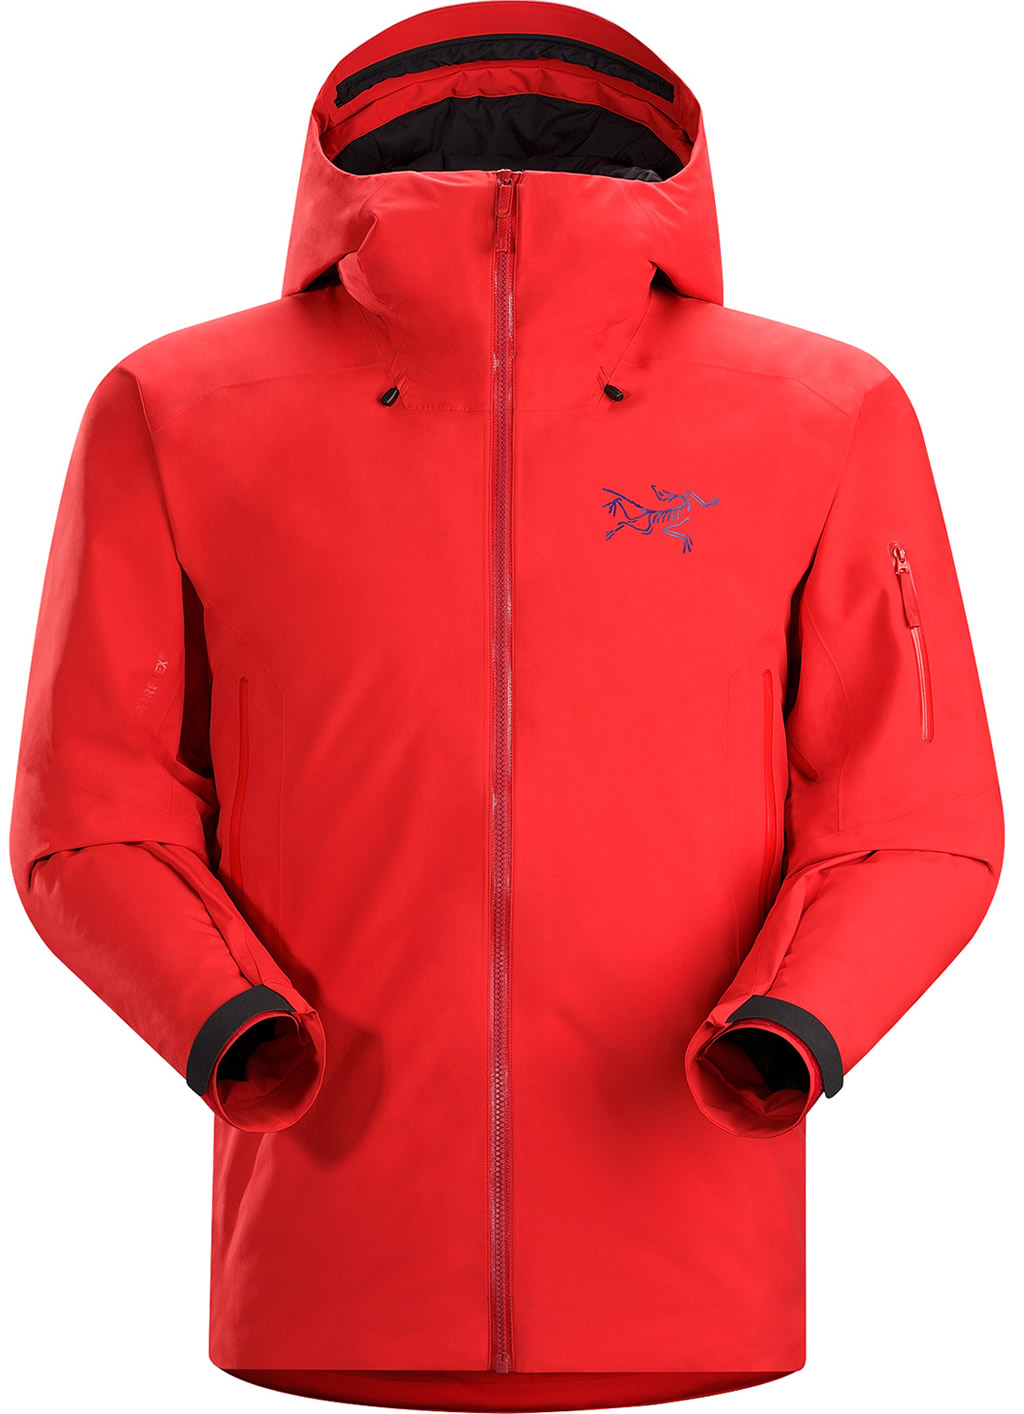 Red Fissile Gore-Tex Jacket